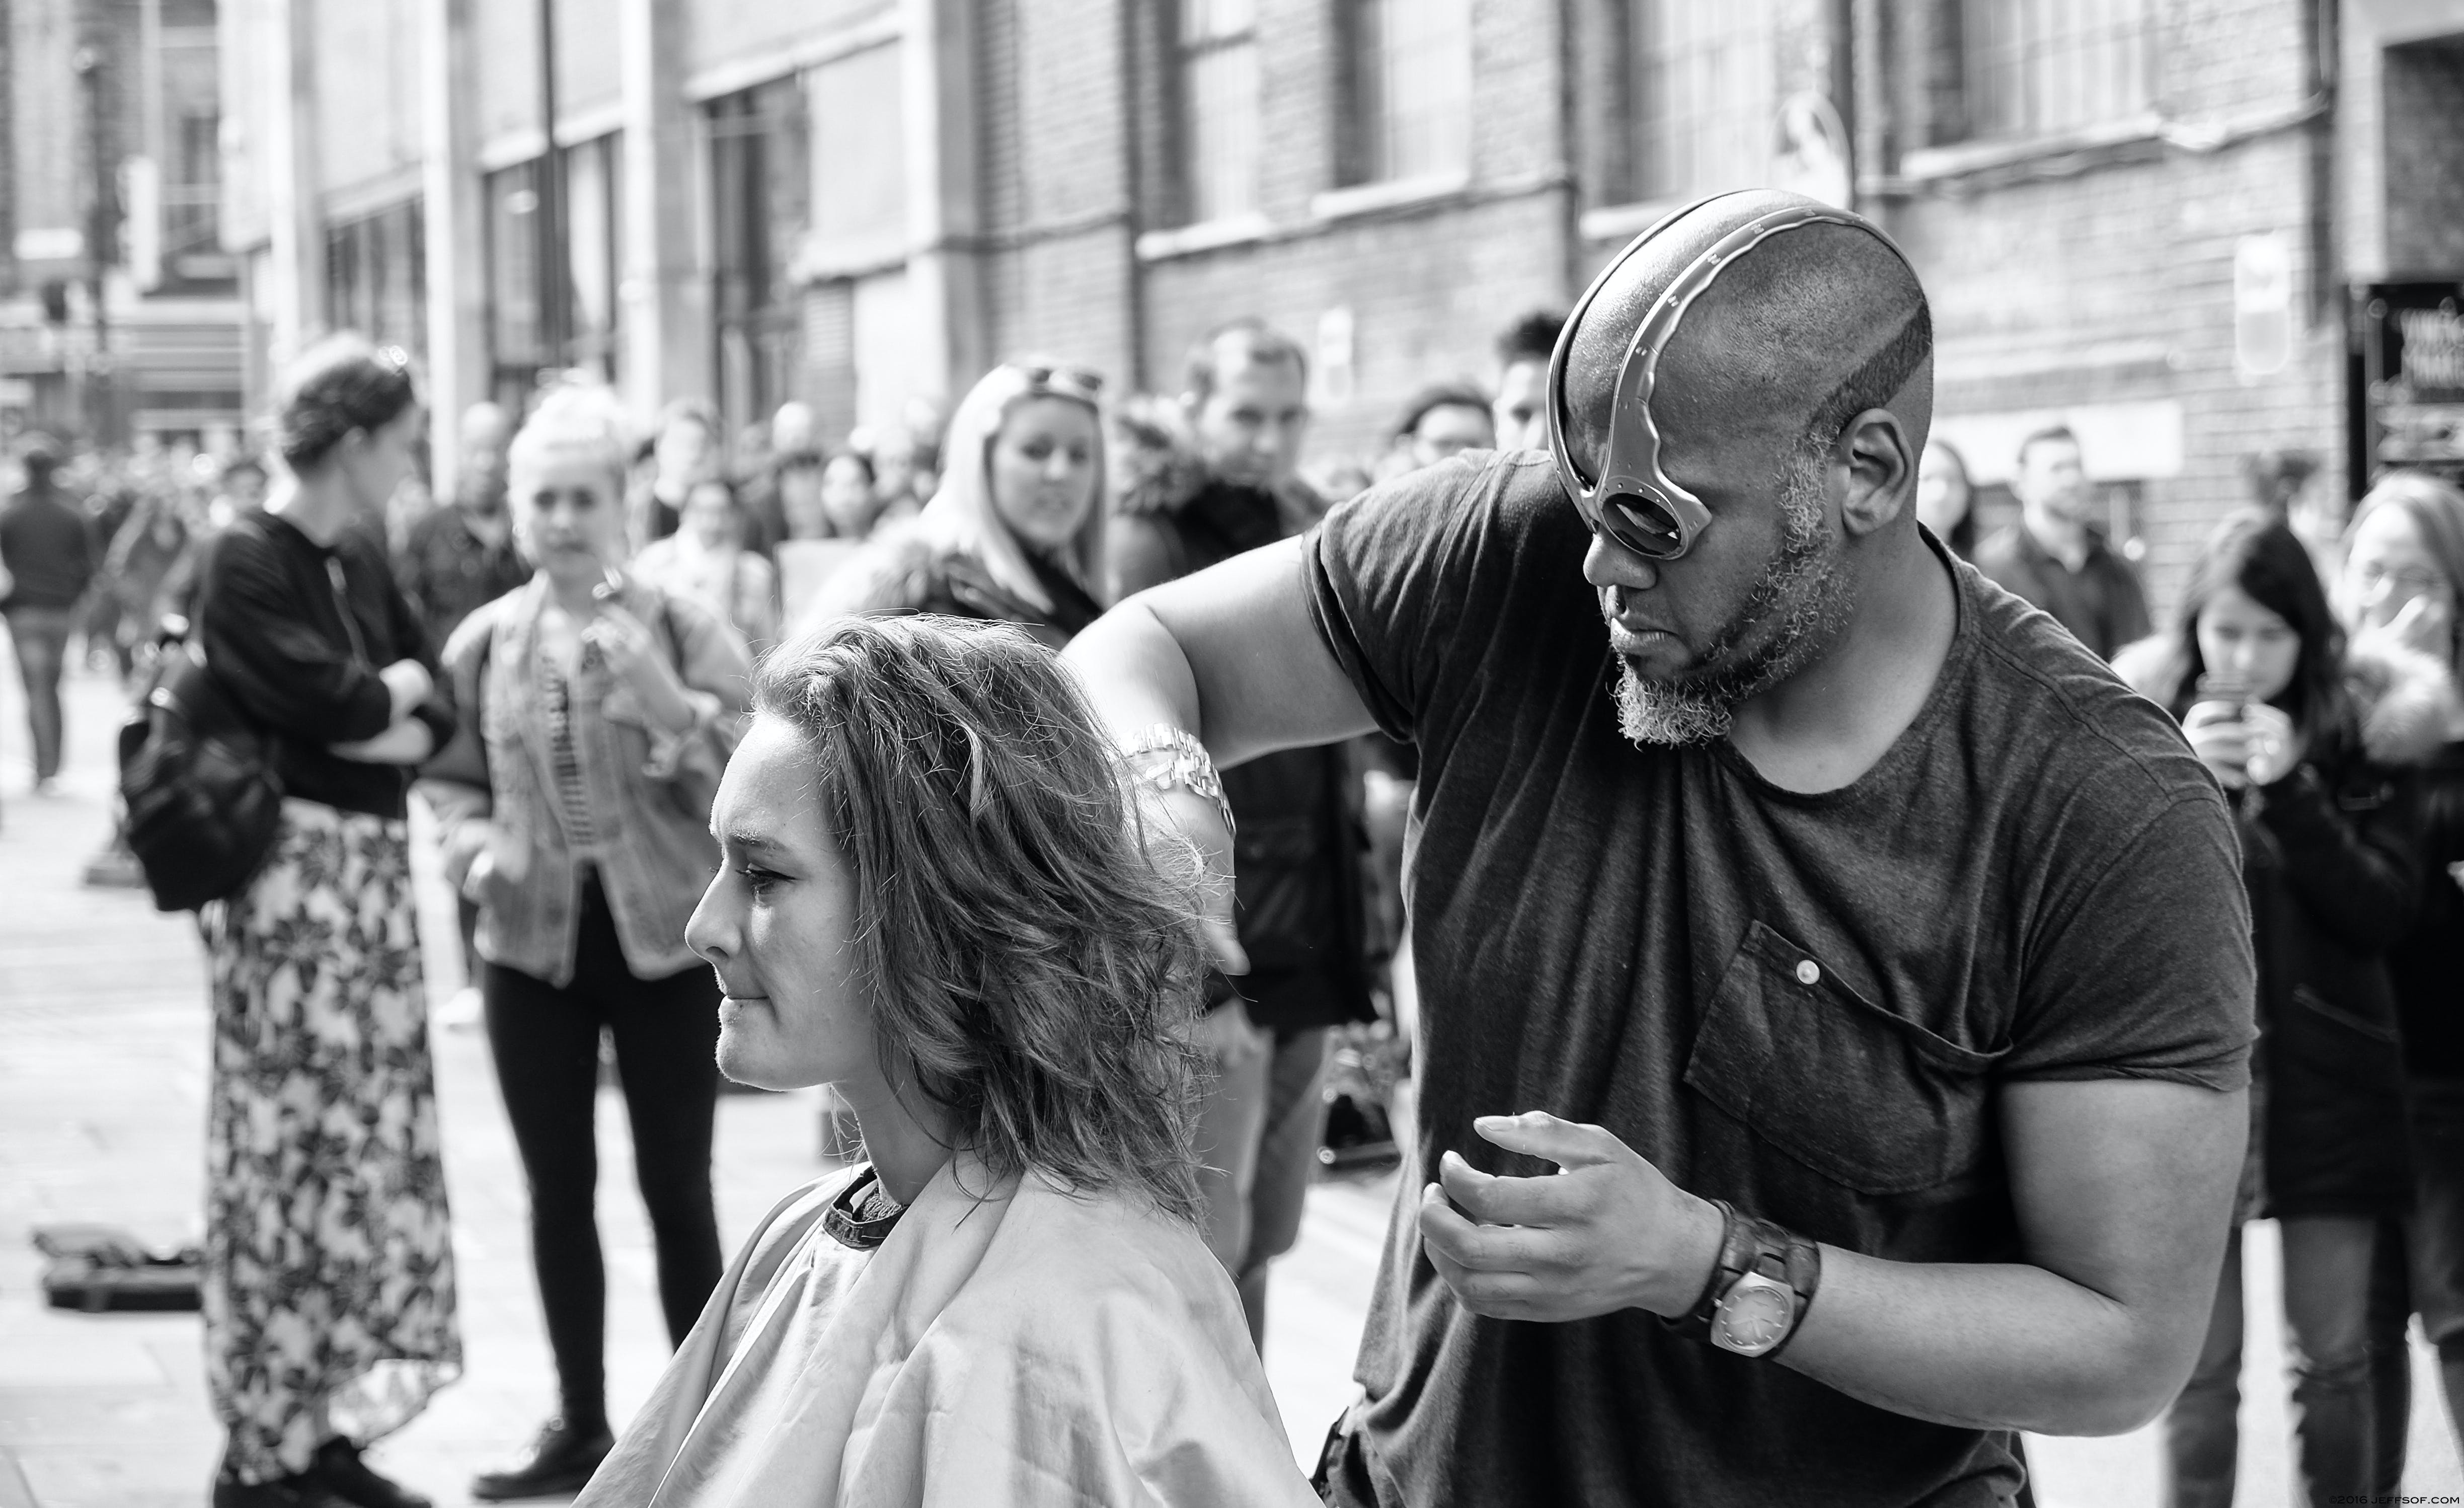 Grayscale Photography of Man Cutting Hair of Woman Surrounded With People